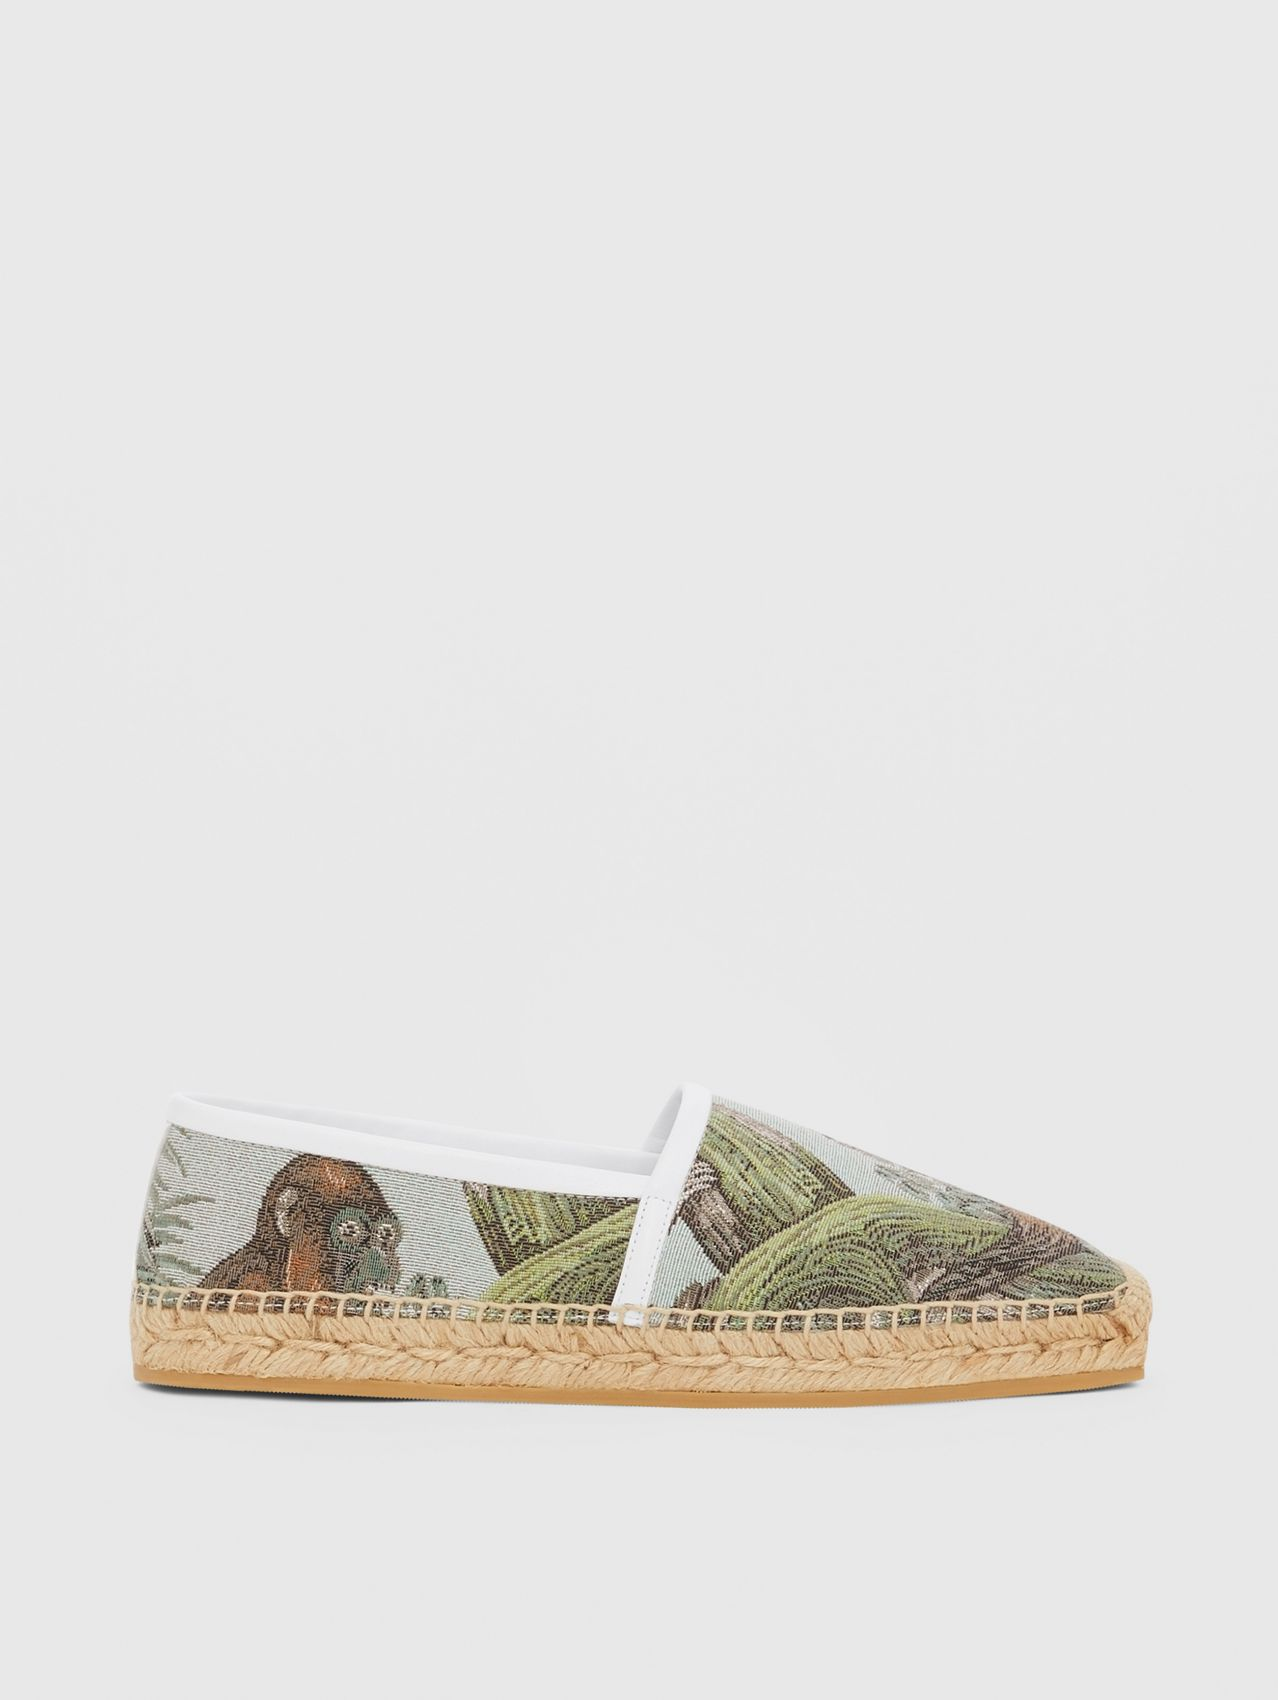 Monkey Jacquard and Leather Espadrilles in Black/opal Green